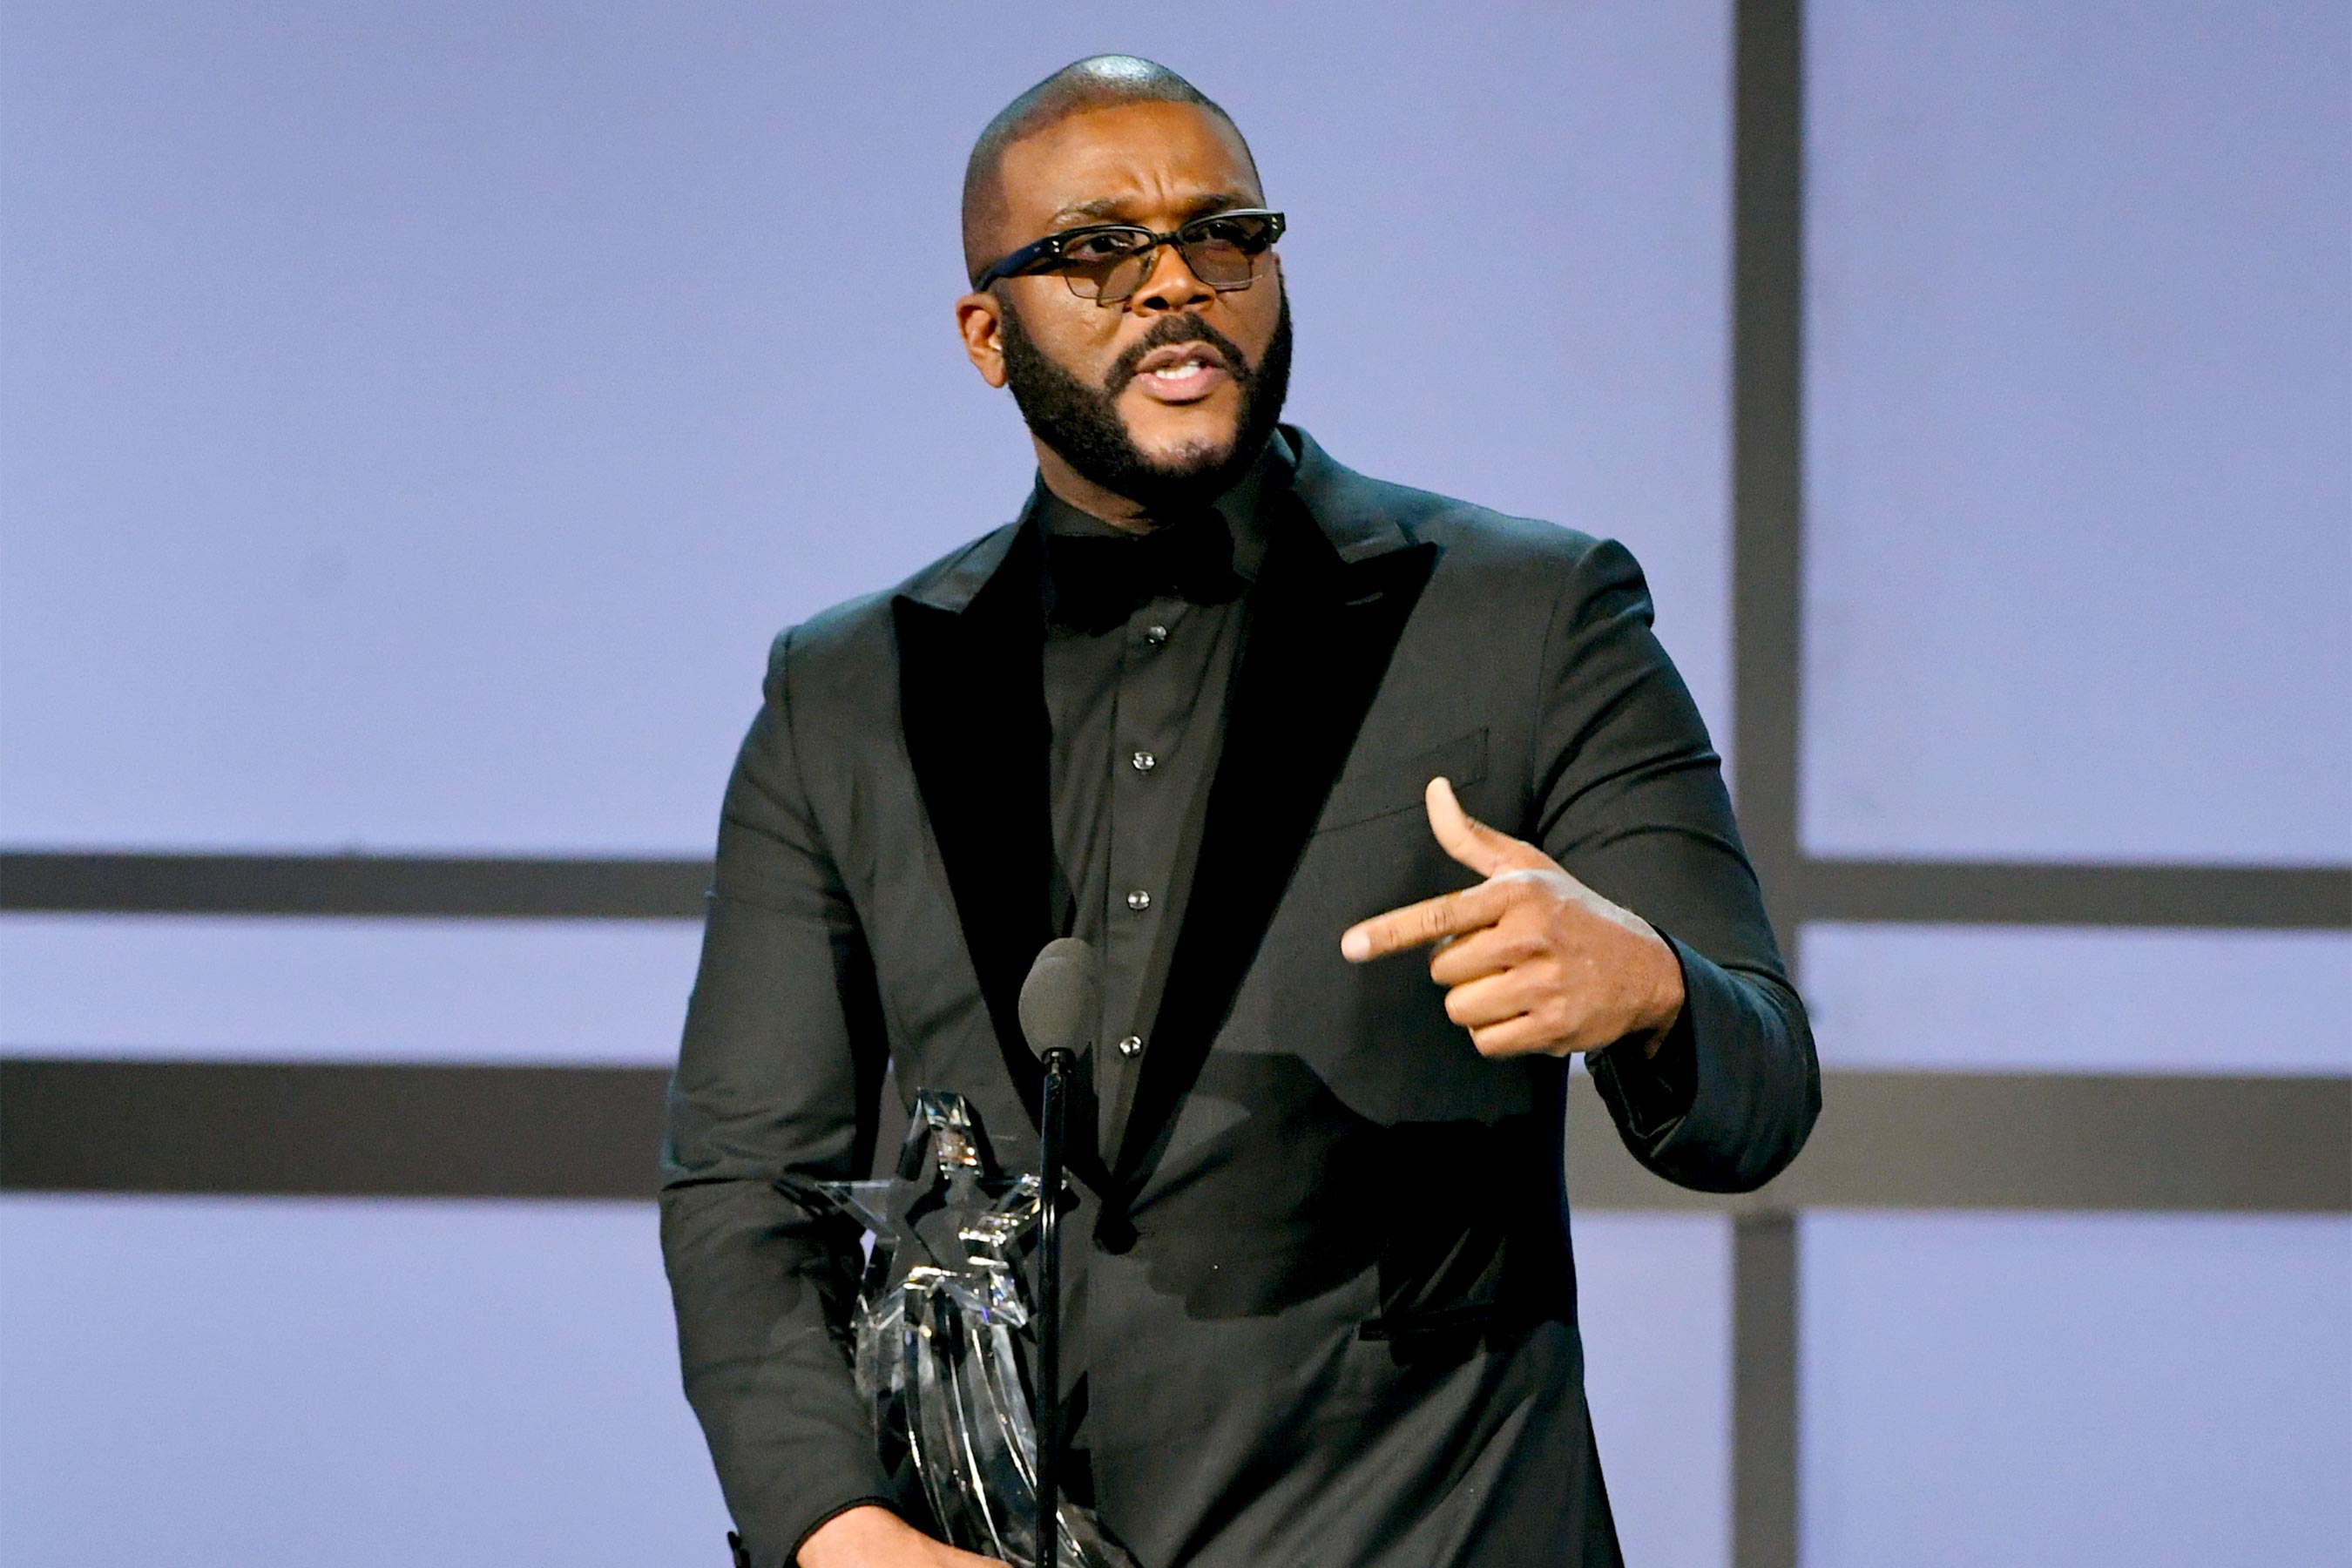 """""""OWN YOUR STUFF, OWN YOUR BUSINESS, OWN YOUR WAY."""" – TYLER PERRY"""